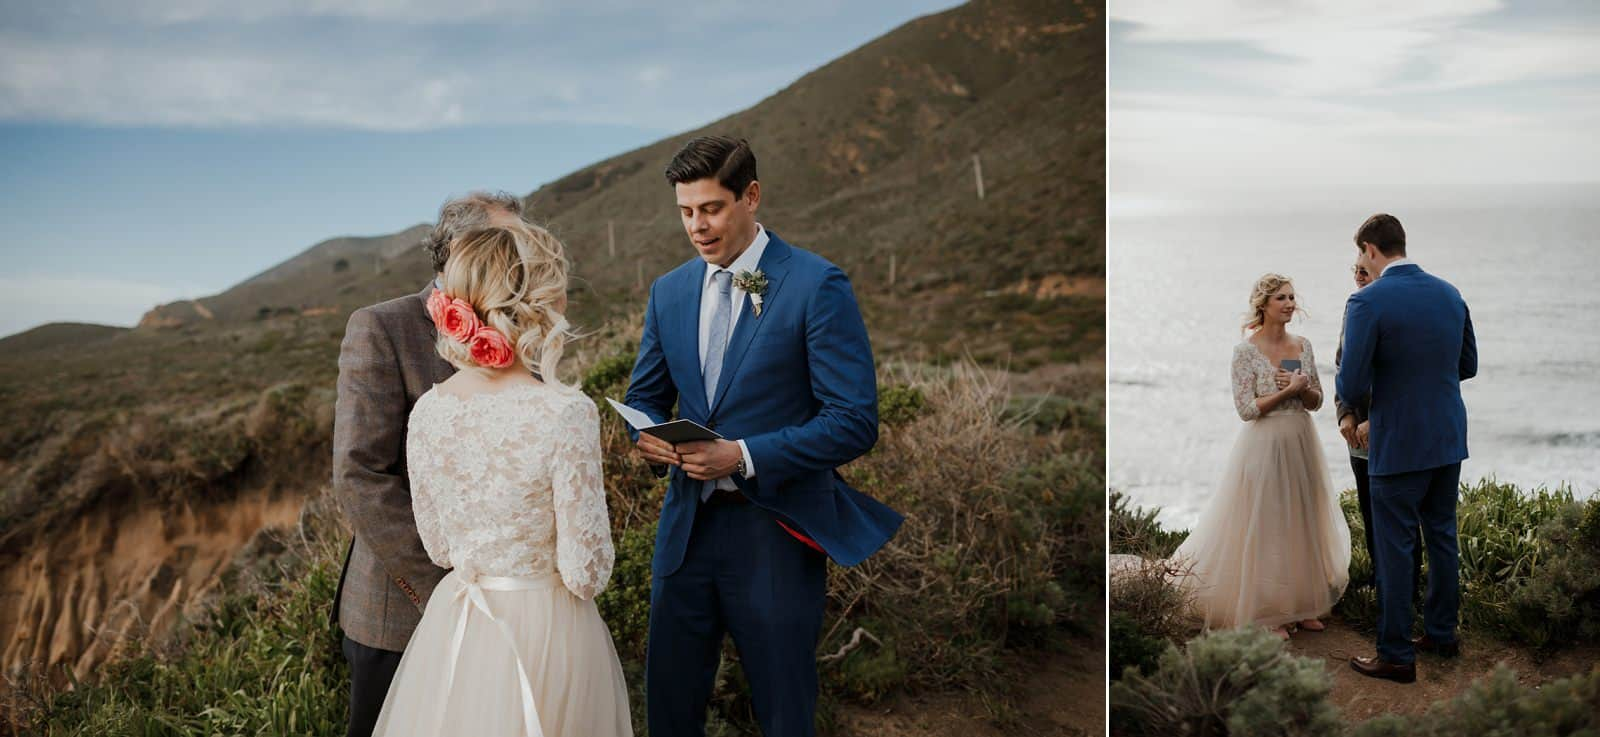 intimate-big-sur-wedding_0047